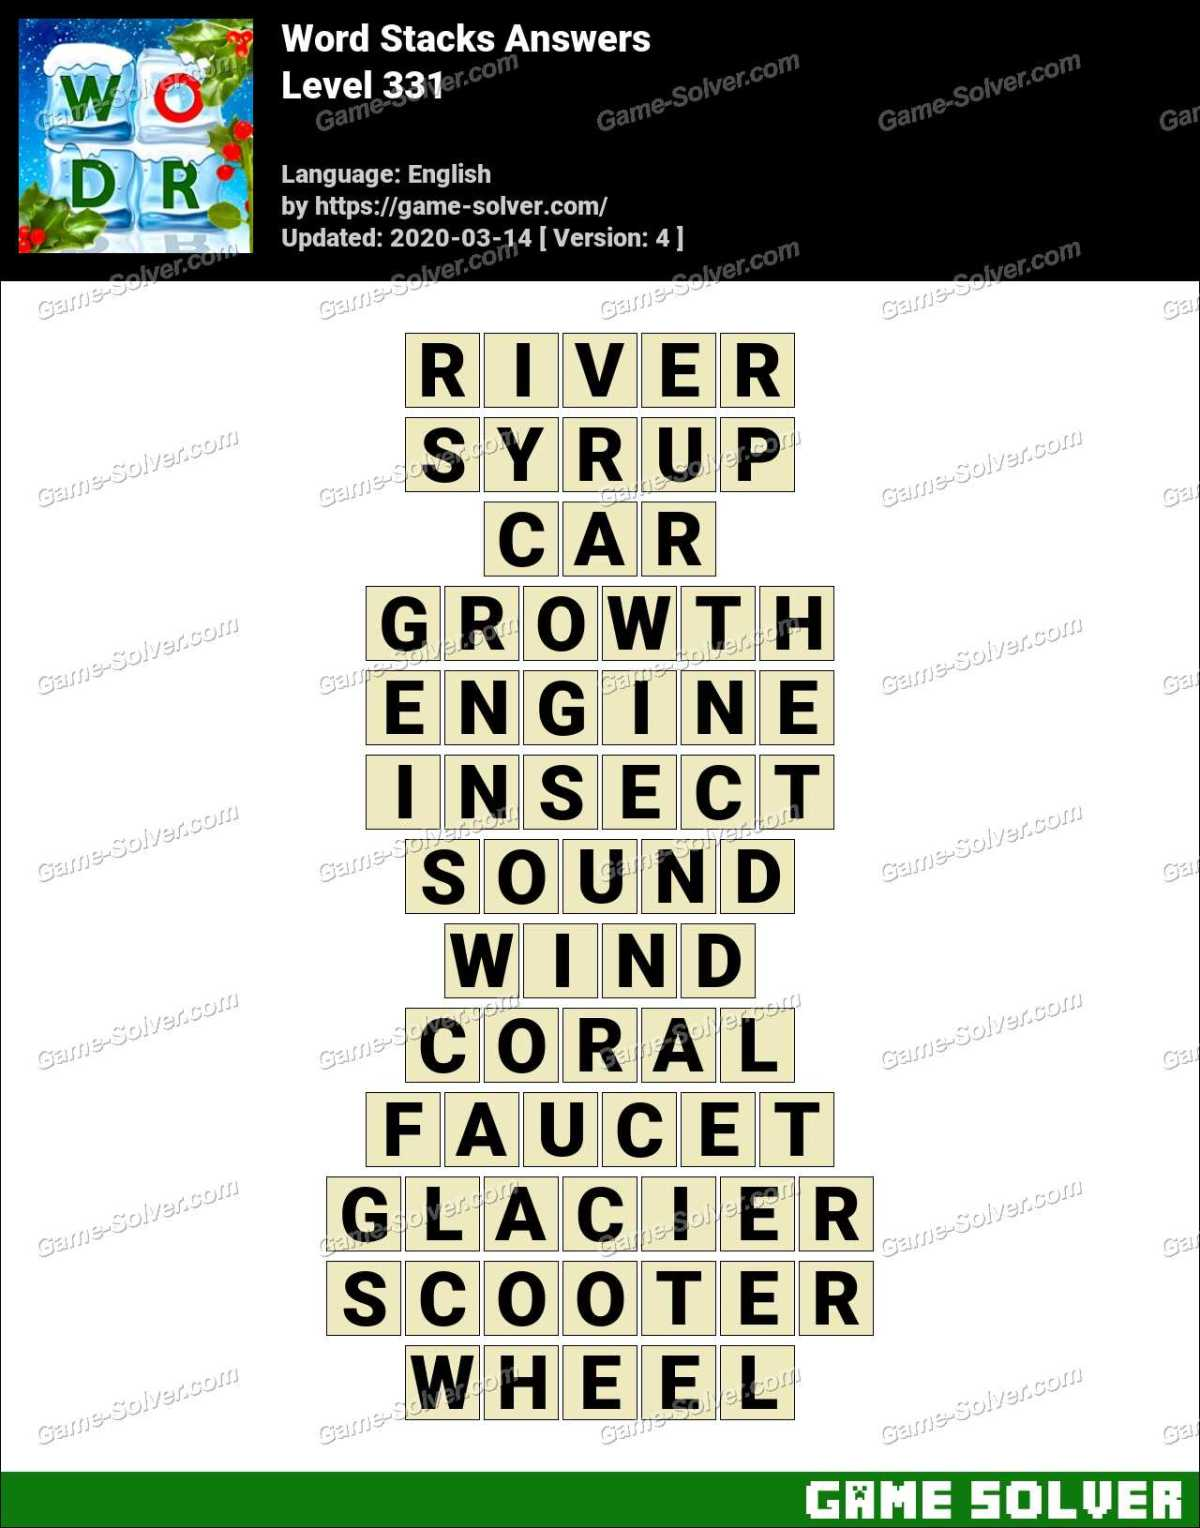 Word Stacks Level 331 Answers